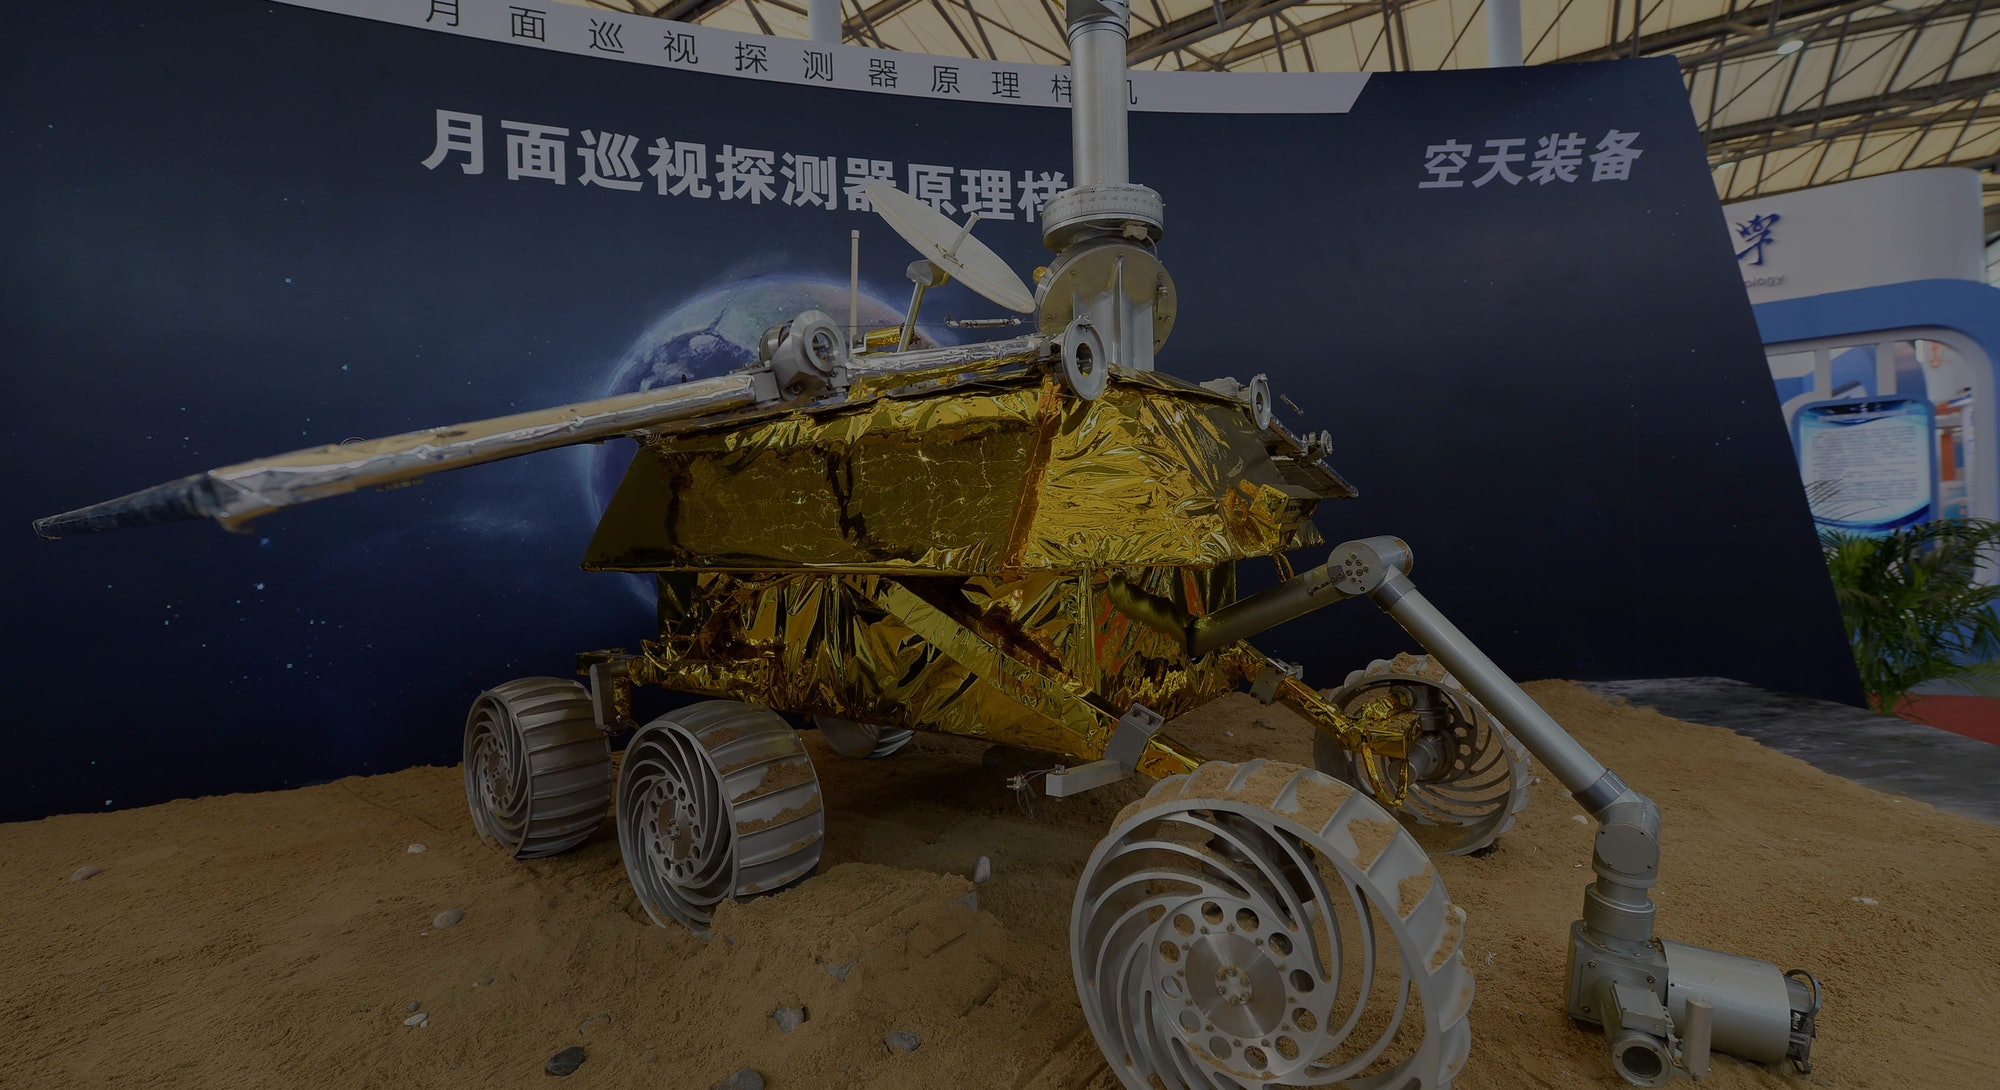 SHANGHAI, CHINA - NOVEMBER 05:  (CHINA OUT) A model of the Chang'e-3 lunar rover is on display durin...